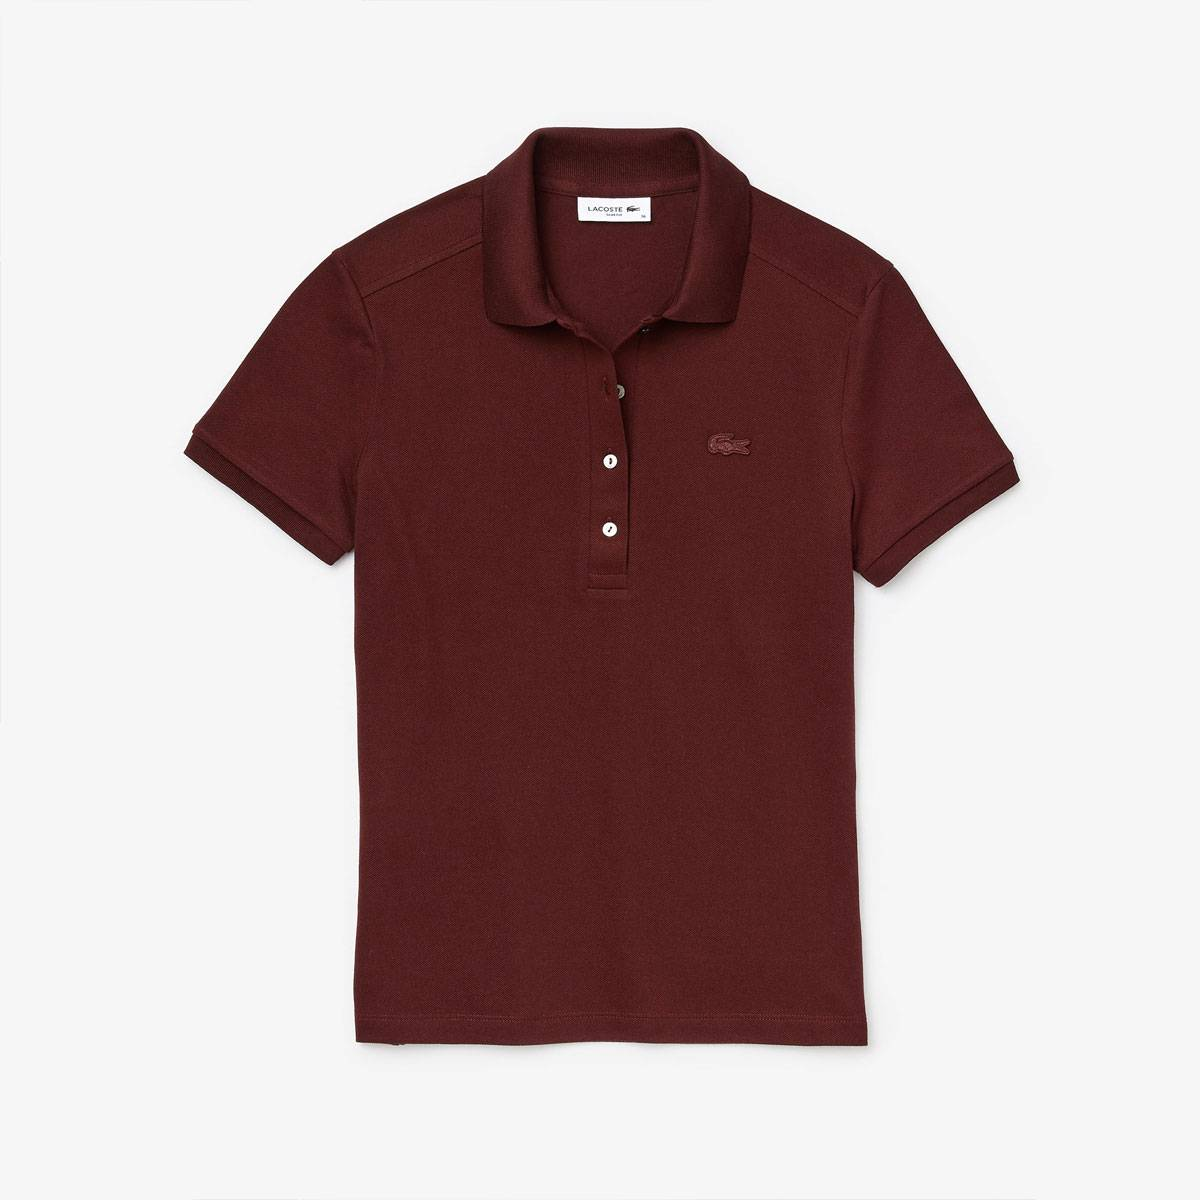 Lacoste Polo Donna in Cotone Stretch Bordeaux 4GD - 38 - Donna